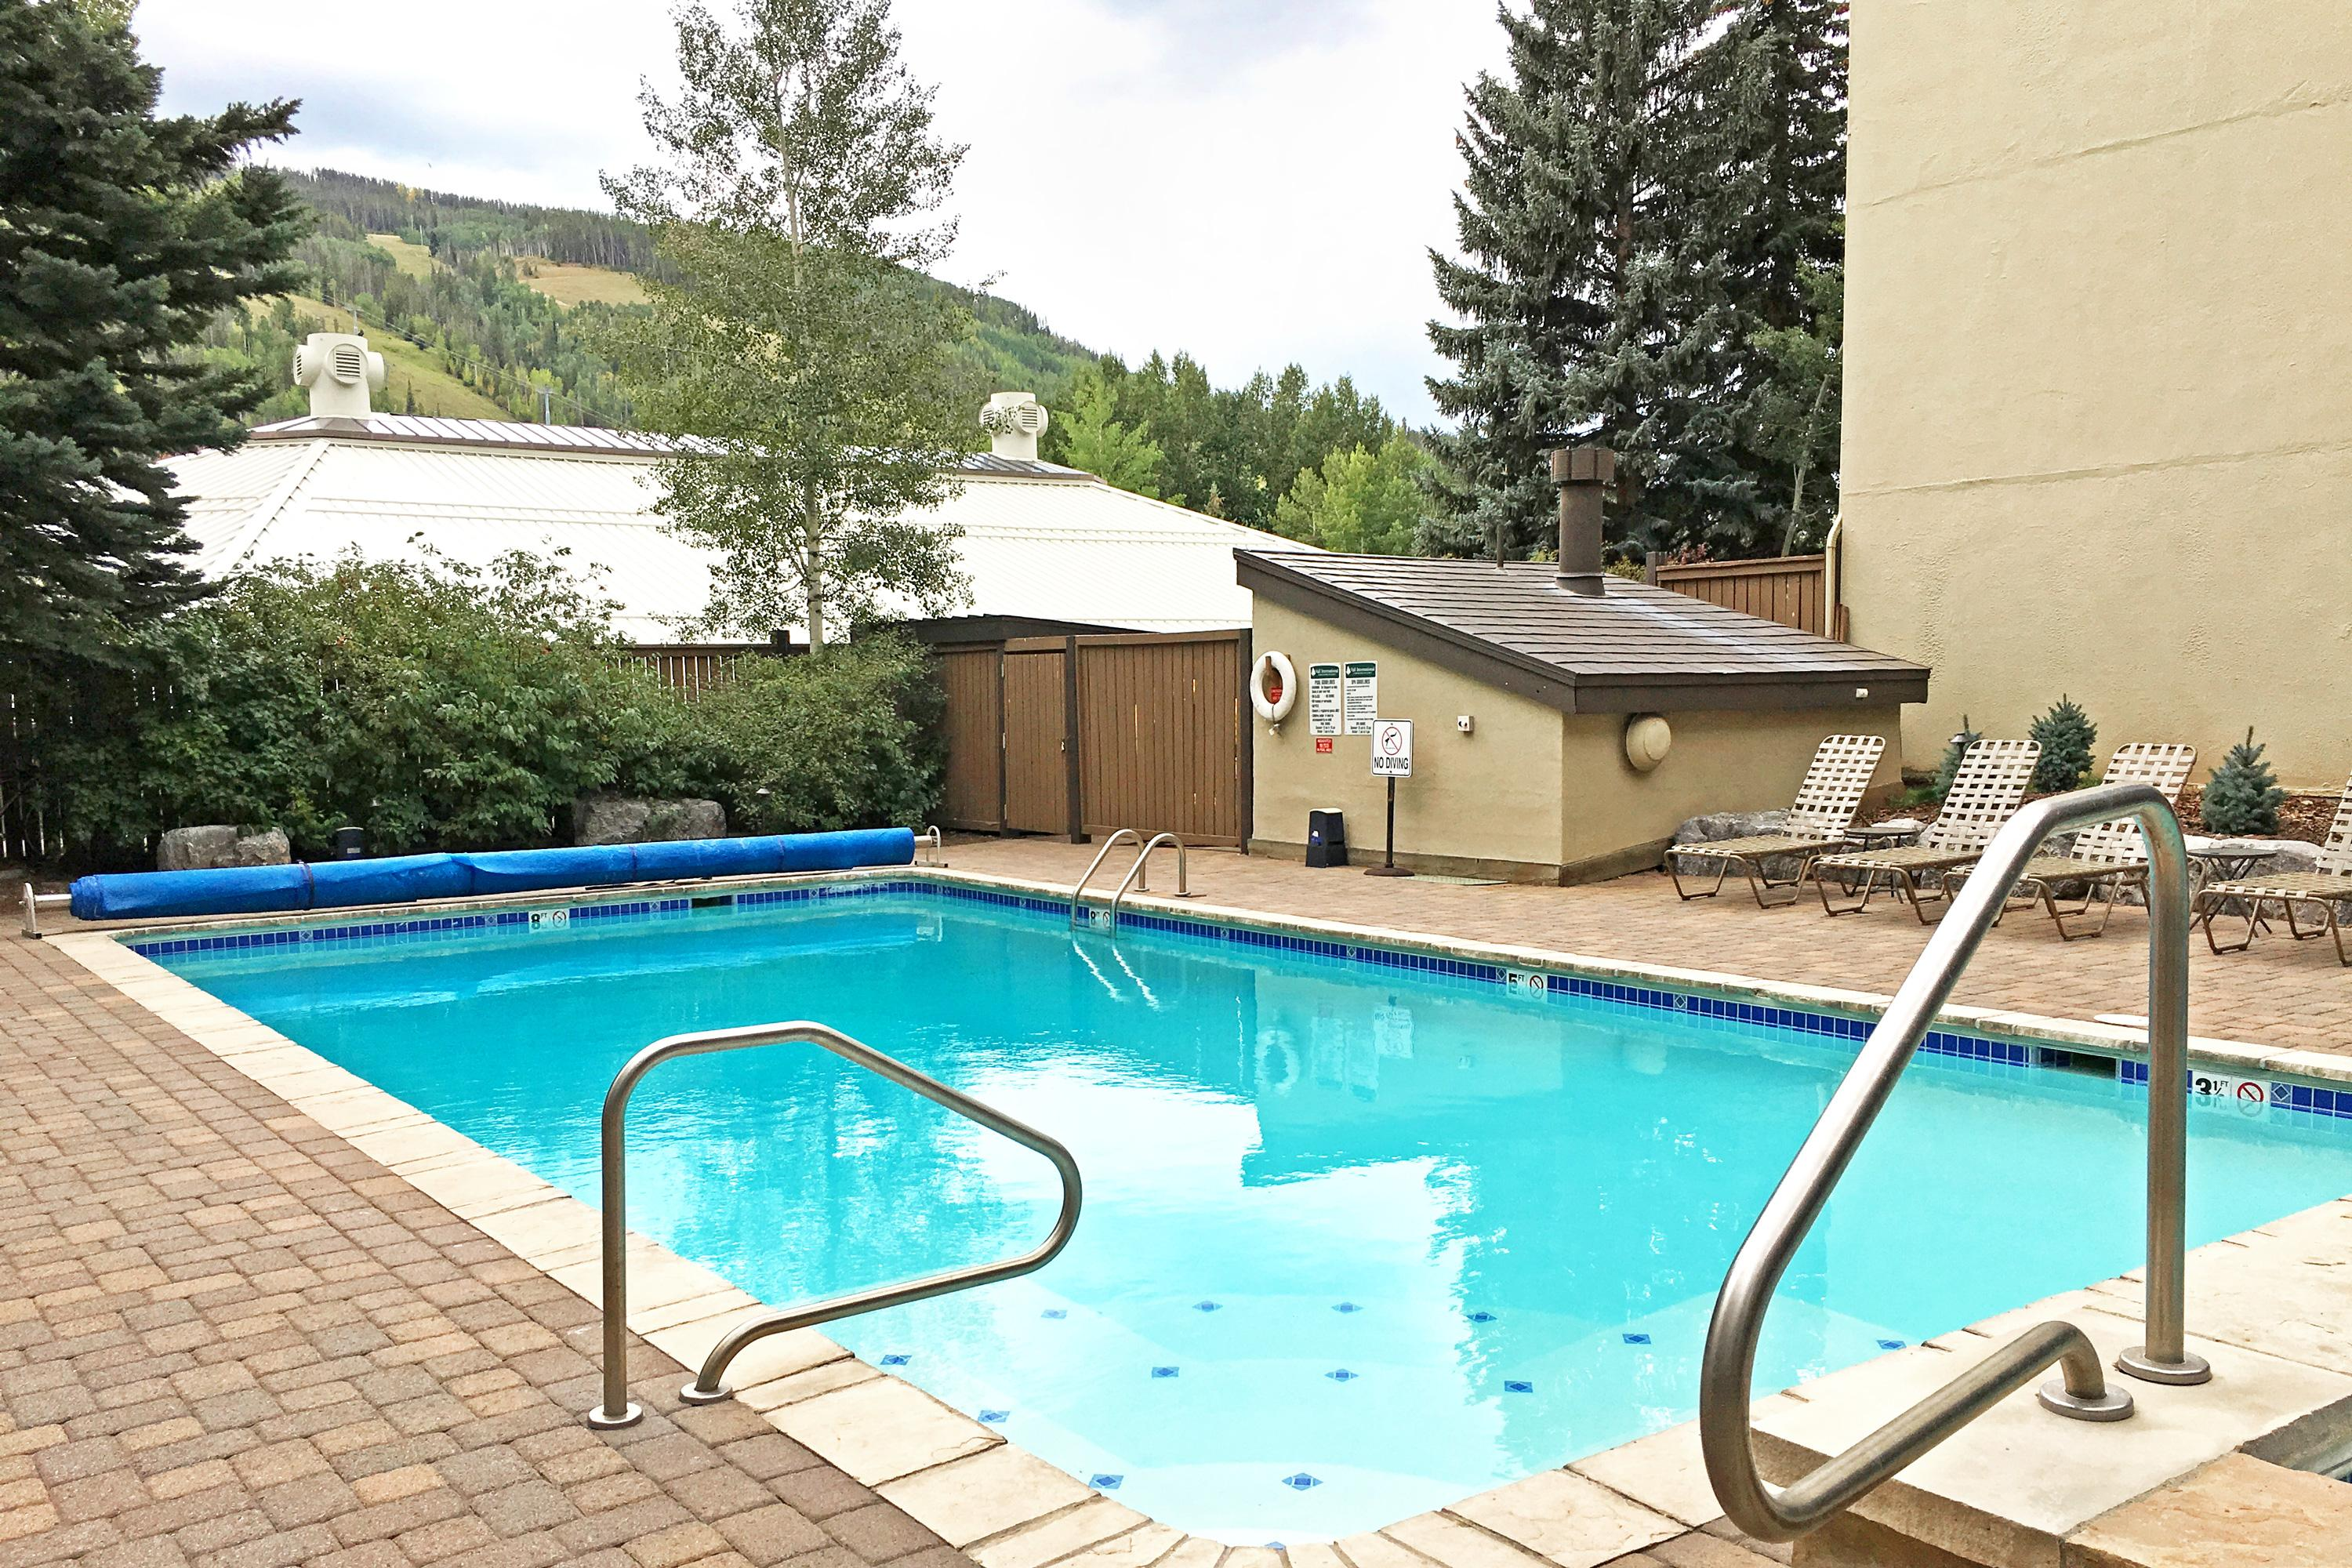 Take a dip in the shared pool with mountain views.